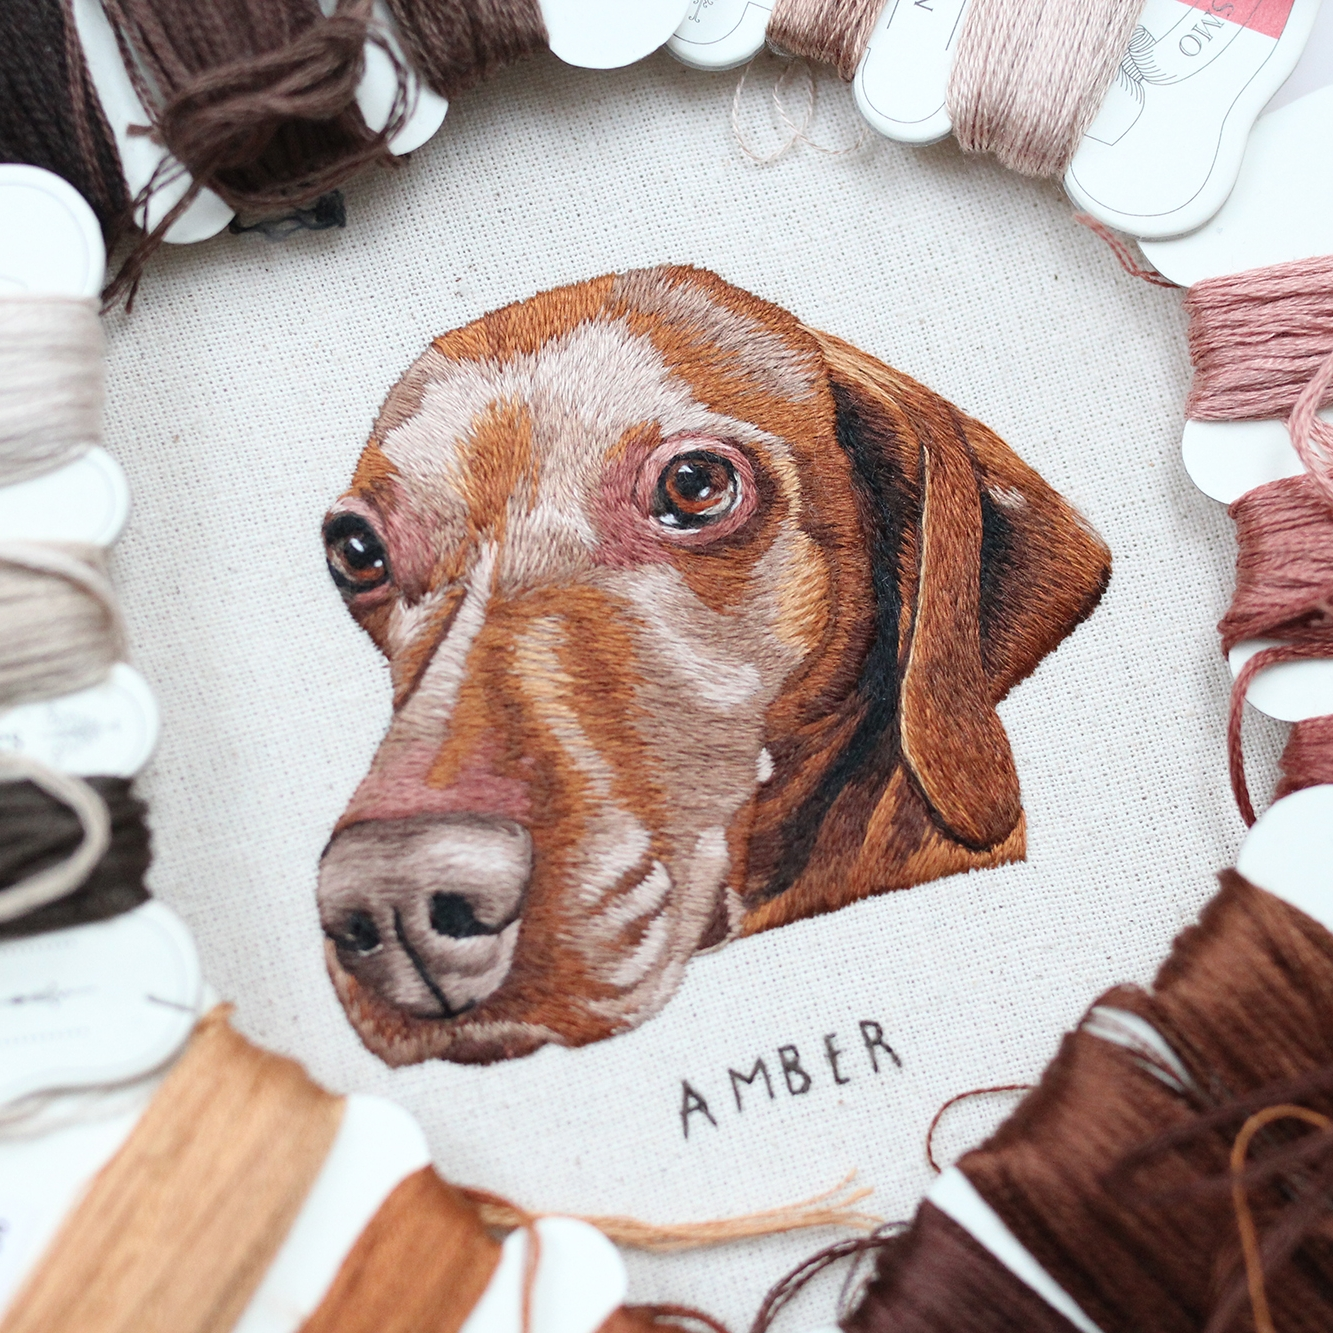 EMILLIE FERRIS - Emillie is a self-taught illustrator based in England. After completing her studies at University in 2015 she pursued a creative career in Embroidery, which she fell in love with during her 2nd year of study. After finding success through the social media platform Instagram, she has been able to embroider an assortment of pet portraits and woodland animals full-time. Emillie hopes to expand her business by embroidering people in the future, hosting workshops & taking part in fairs & exhibitions.